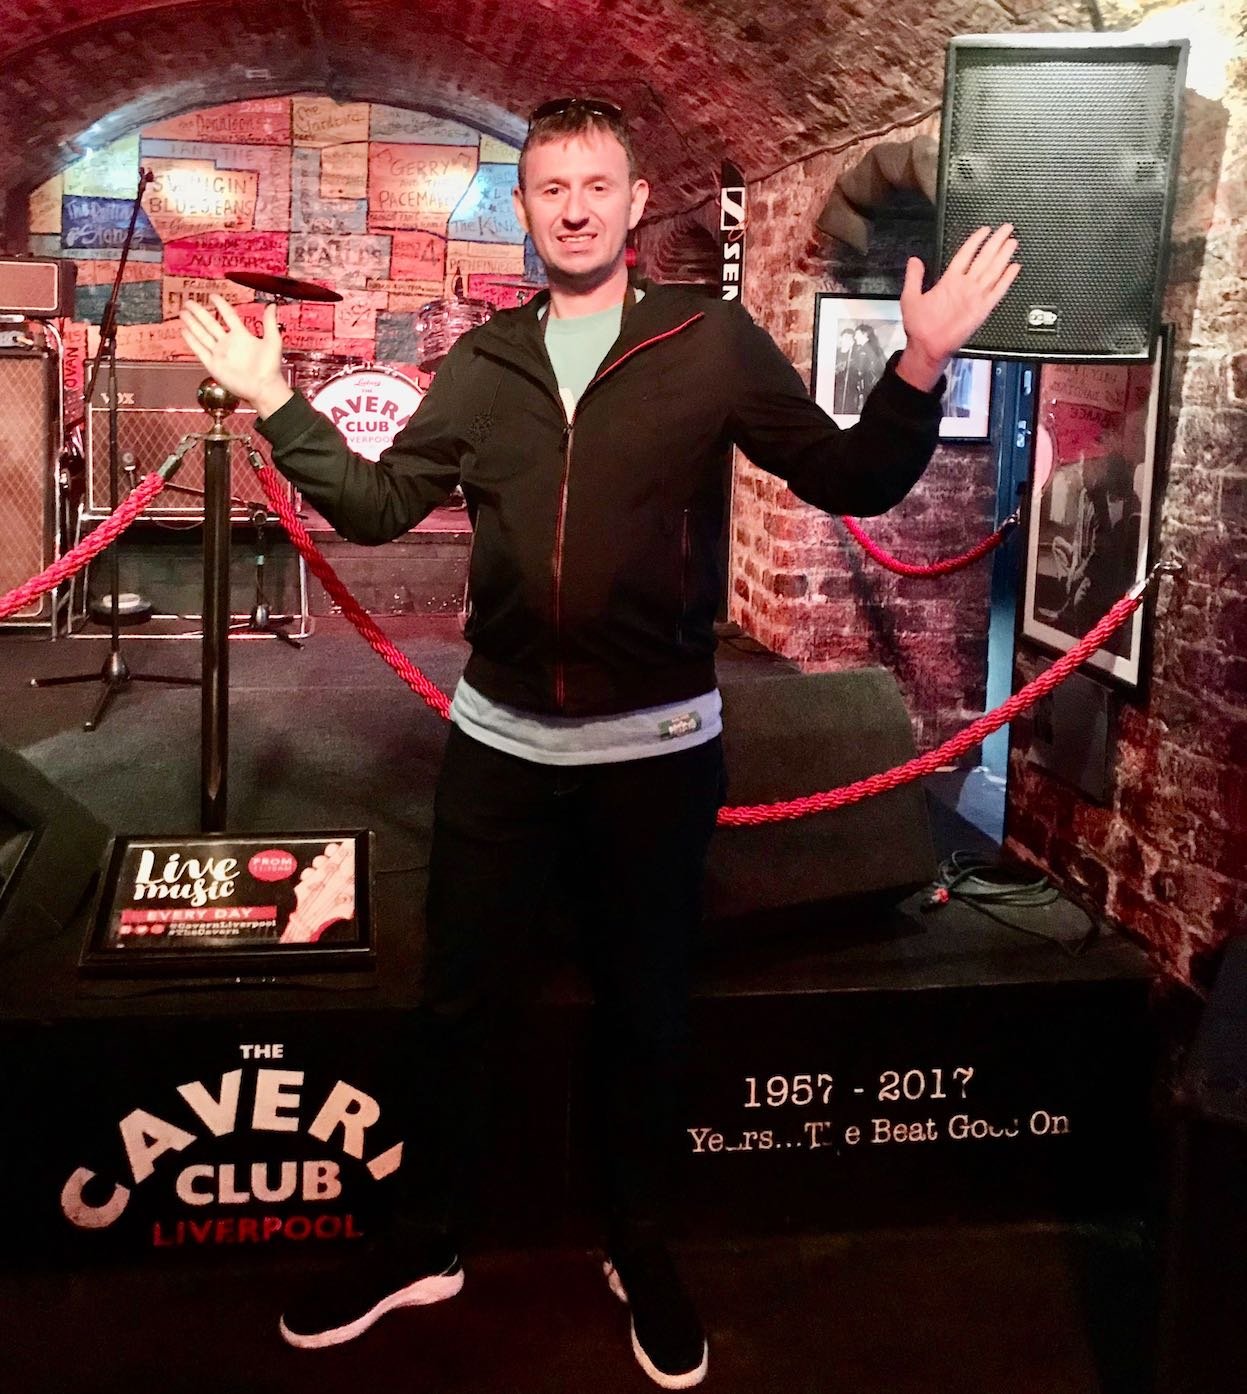 The stage at The Cavern Club in Liverpool